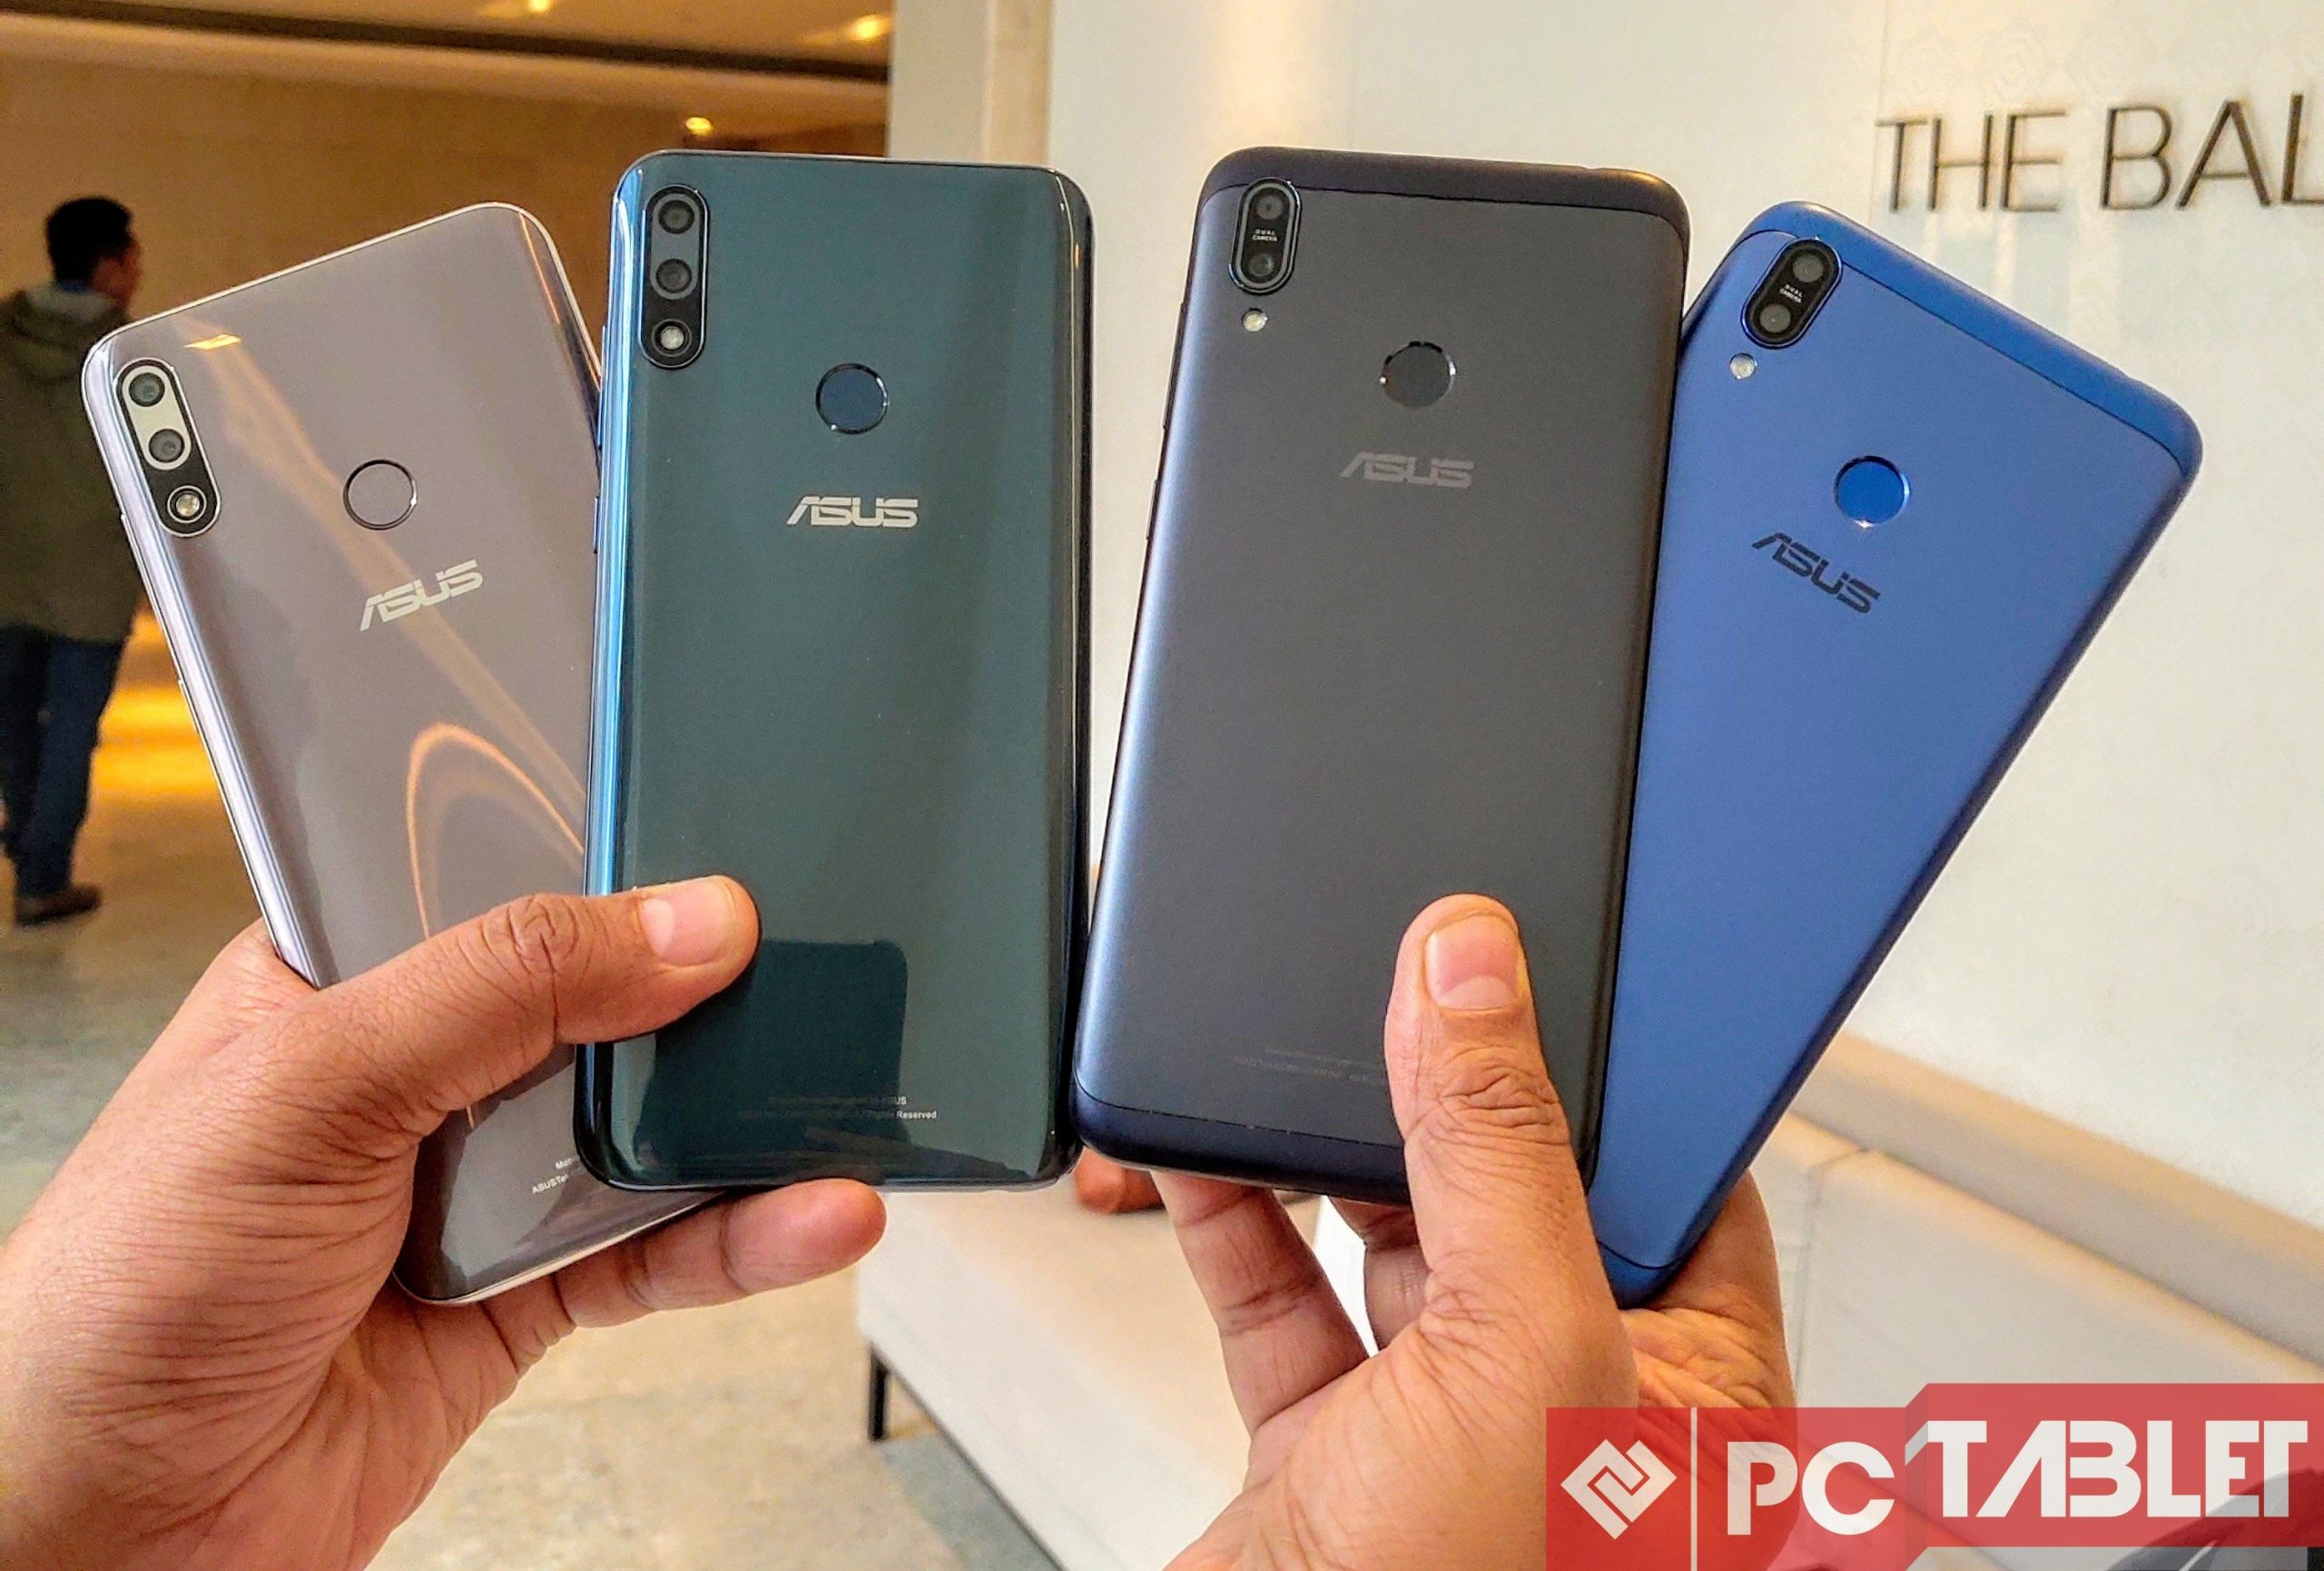 Asus Zenfone Max Pro M2 and Max M2 marked scaled